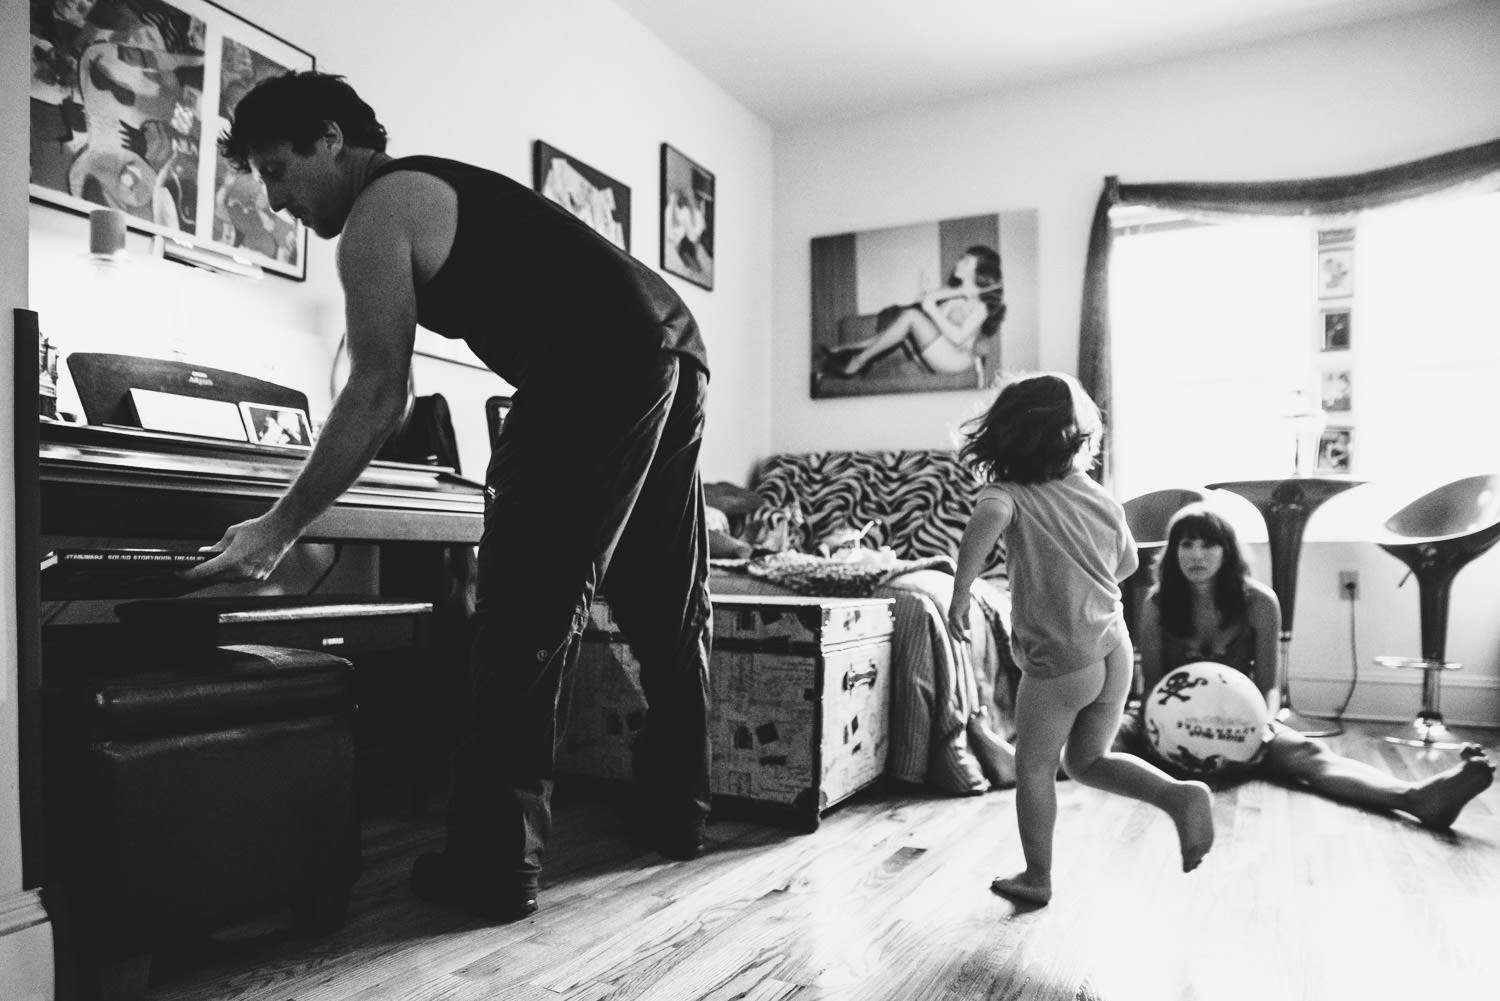 A family plays catch in their living room.